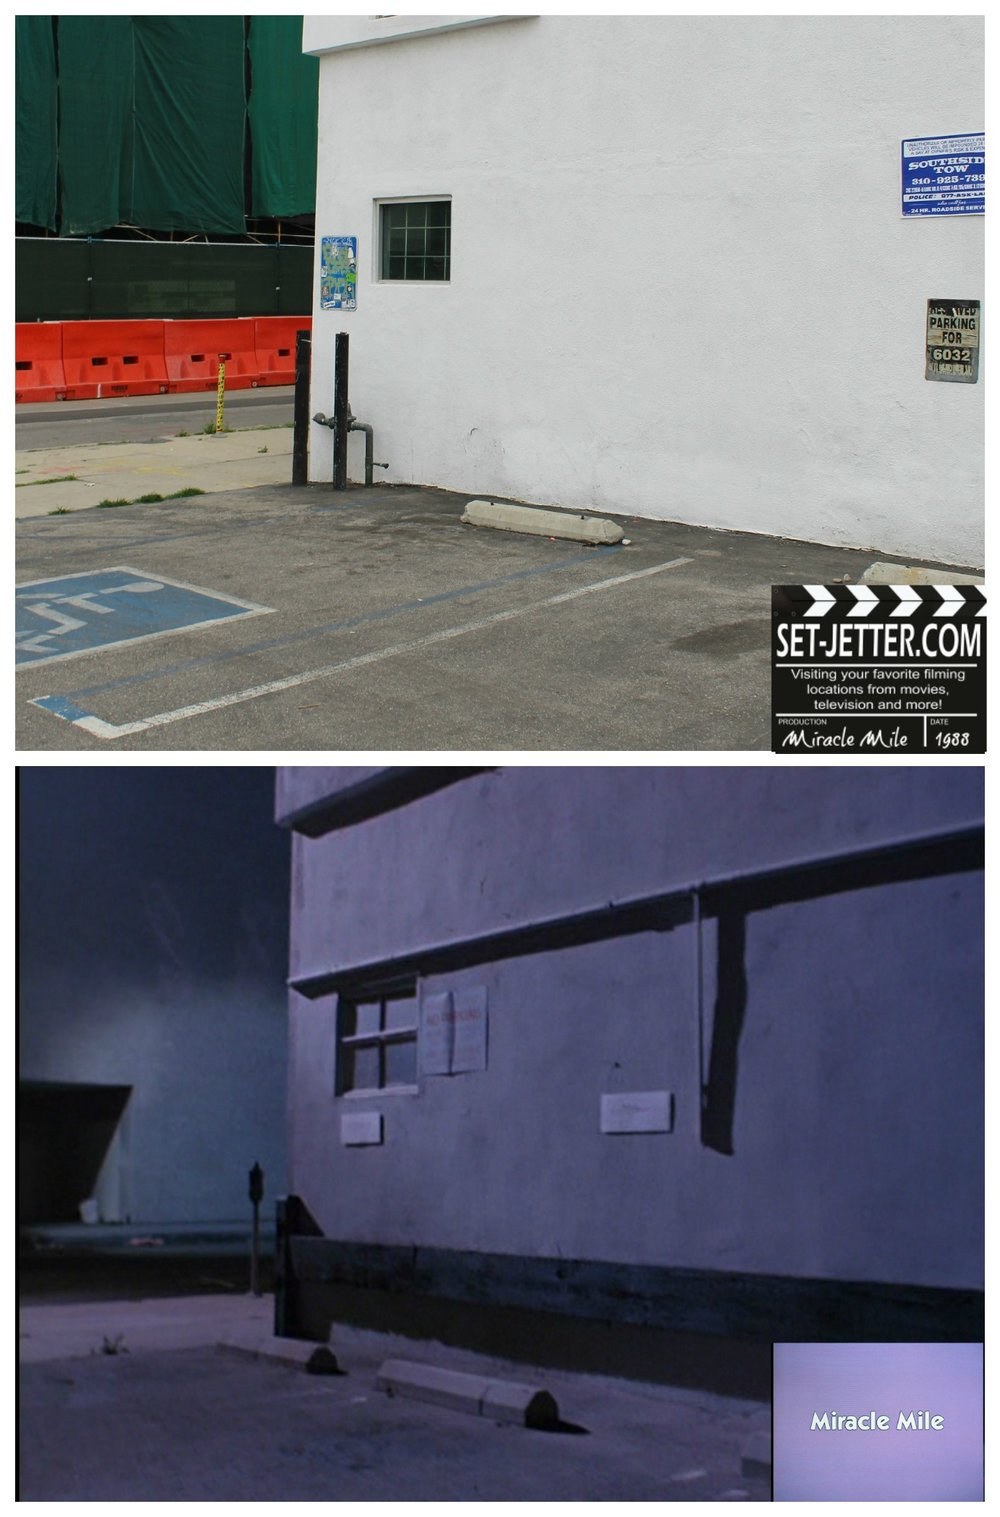 Miracle Mile comparison 22.jpg